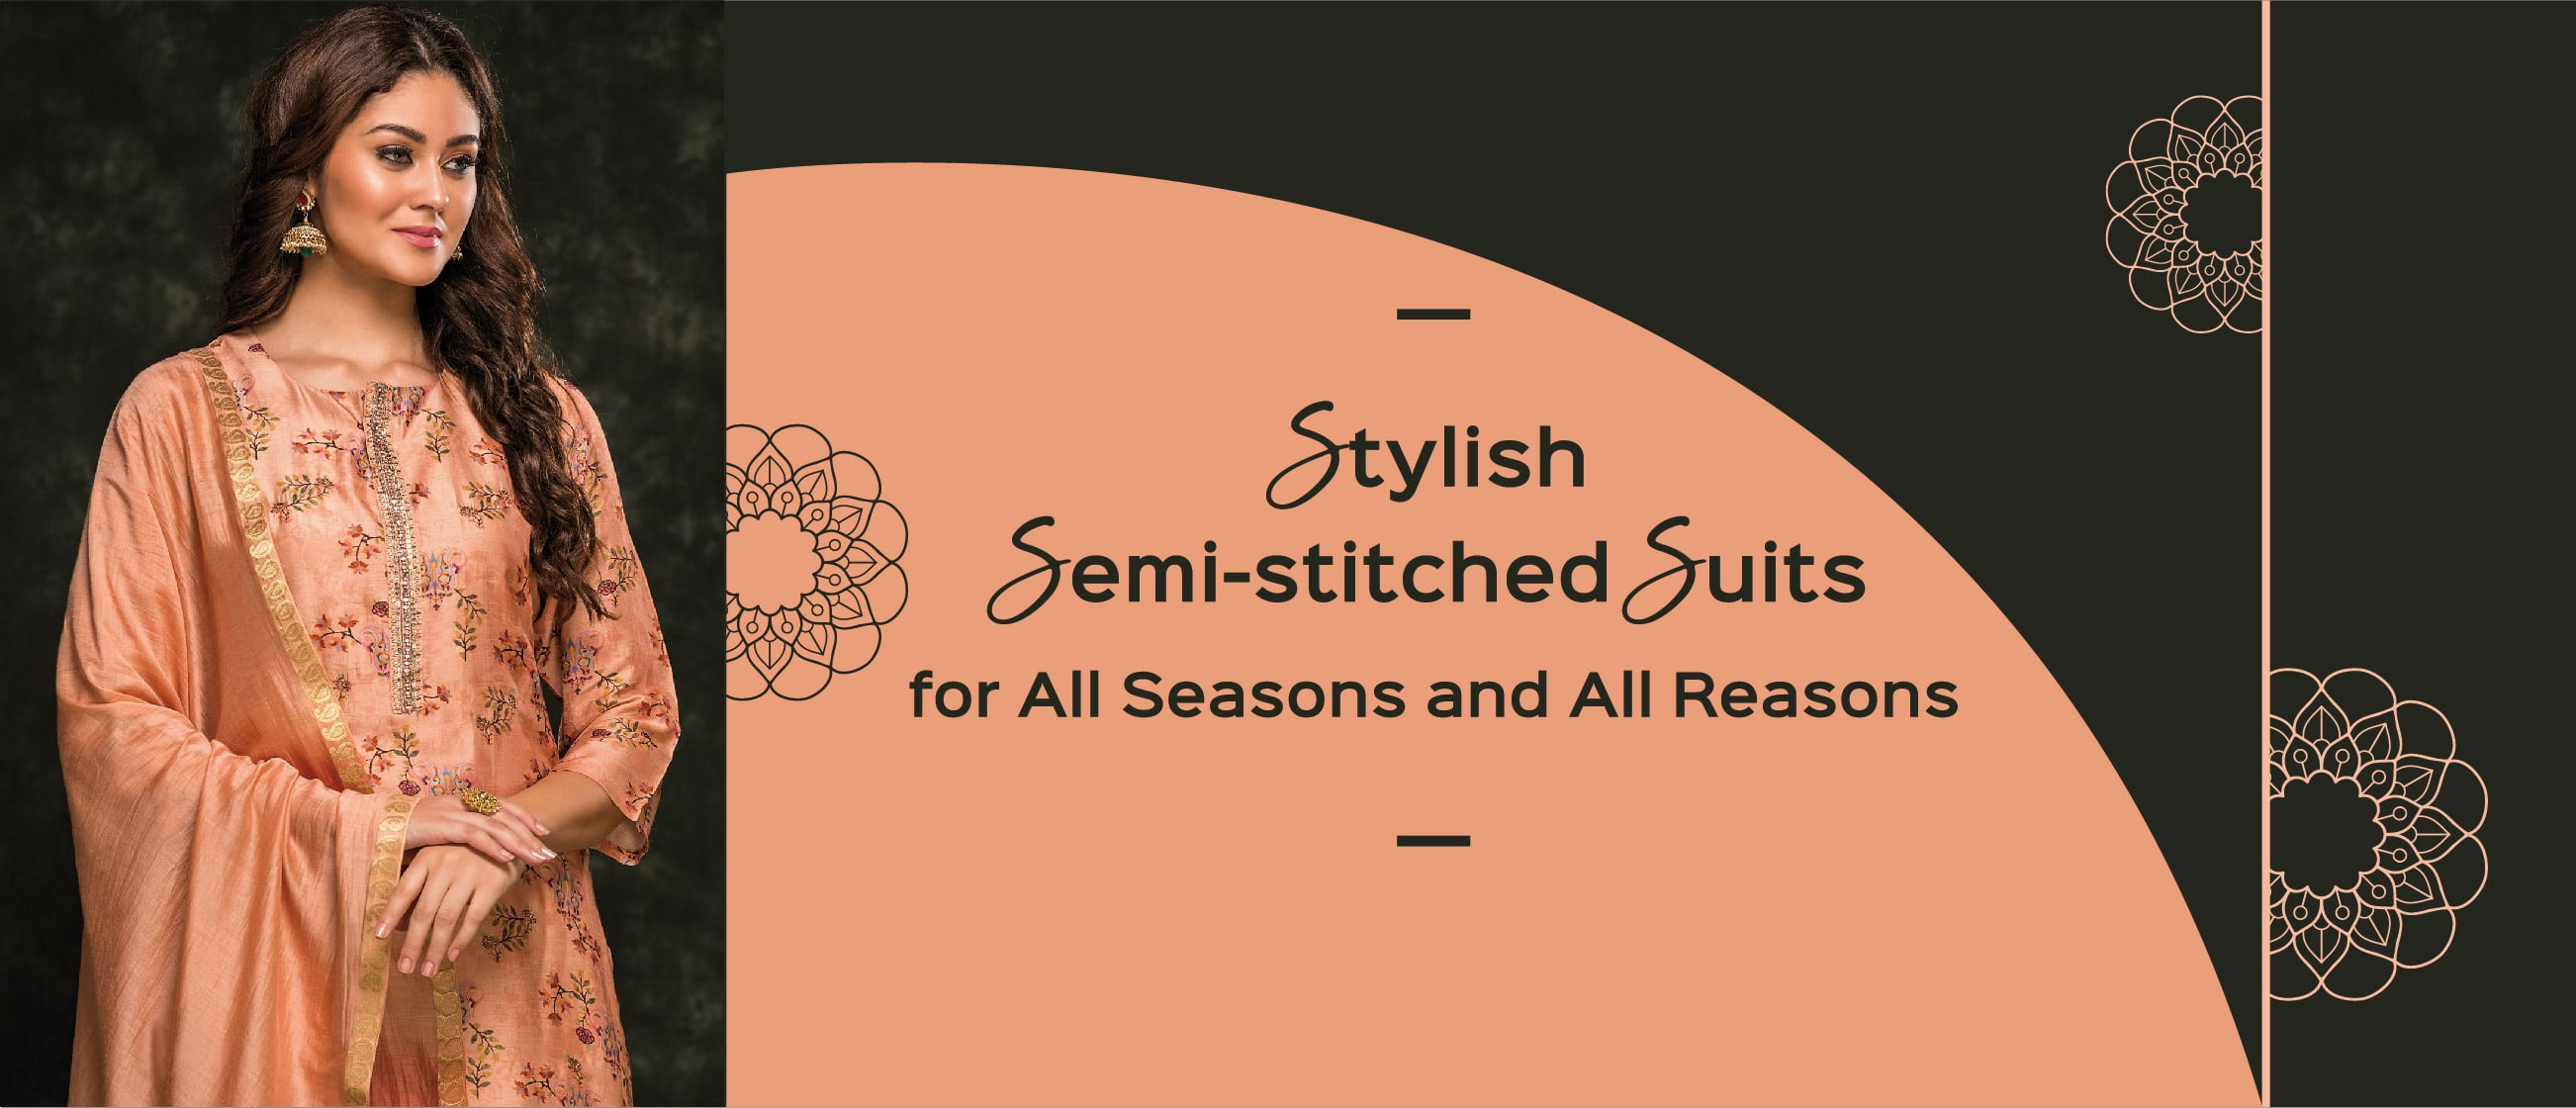 Stylish Semi-stitched Suits for All Seasons and All Reasons